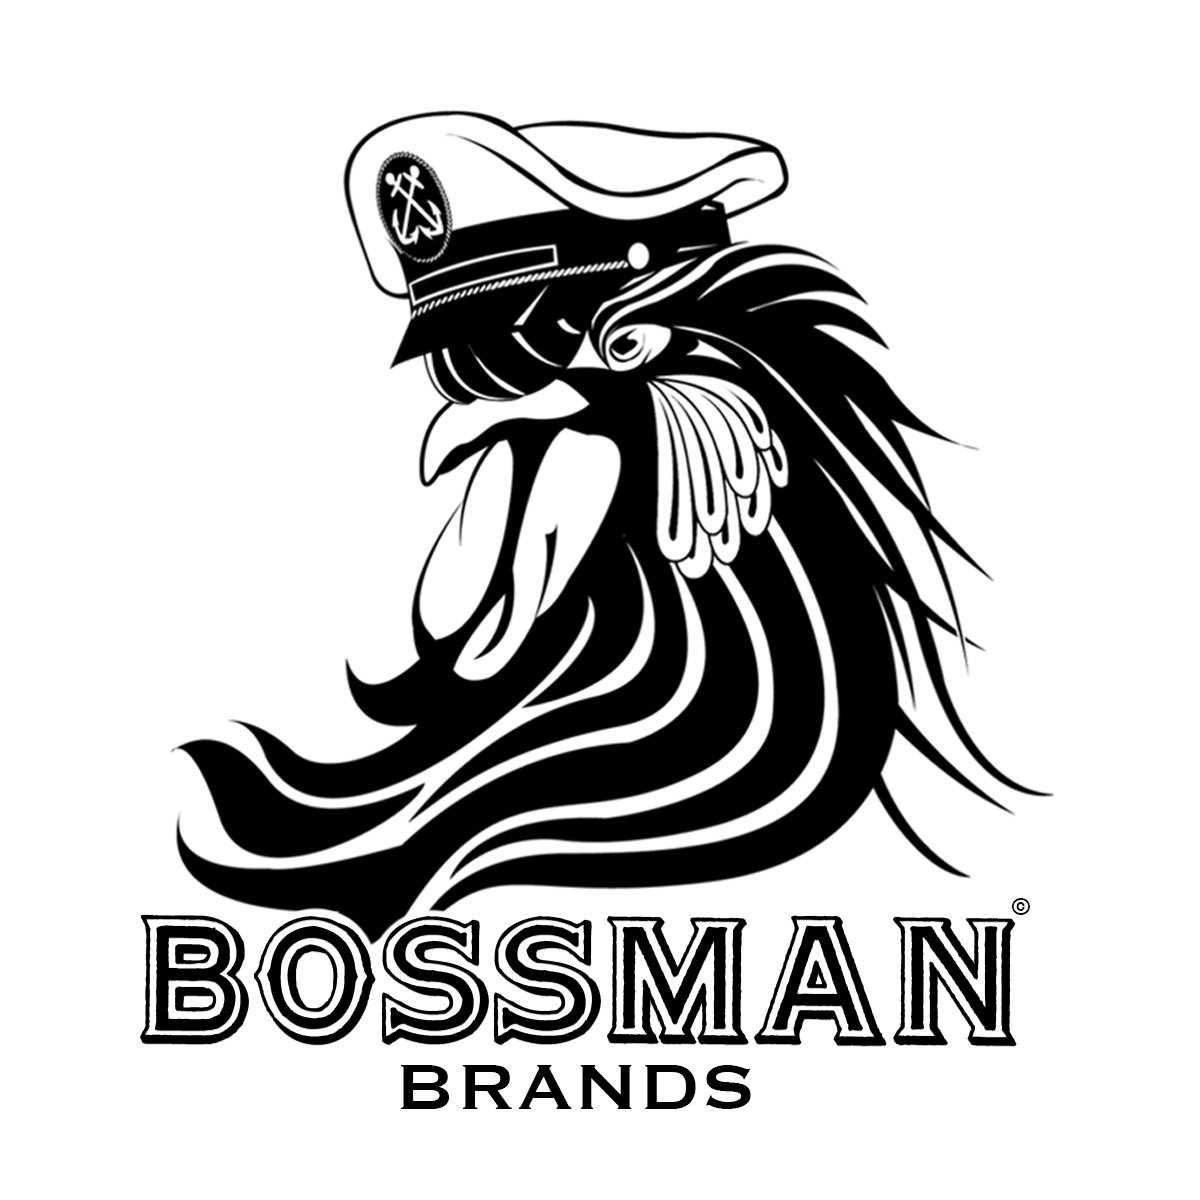 Rooster logo cut